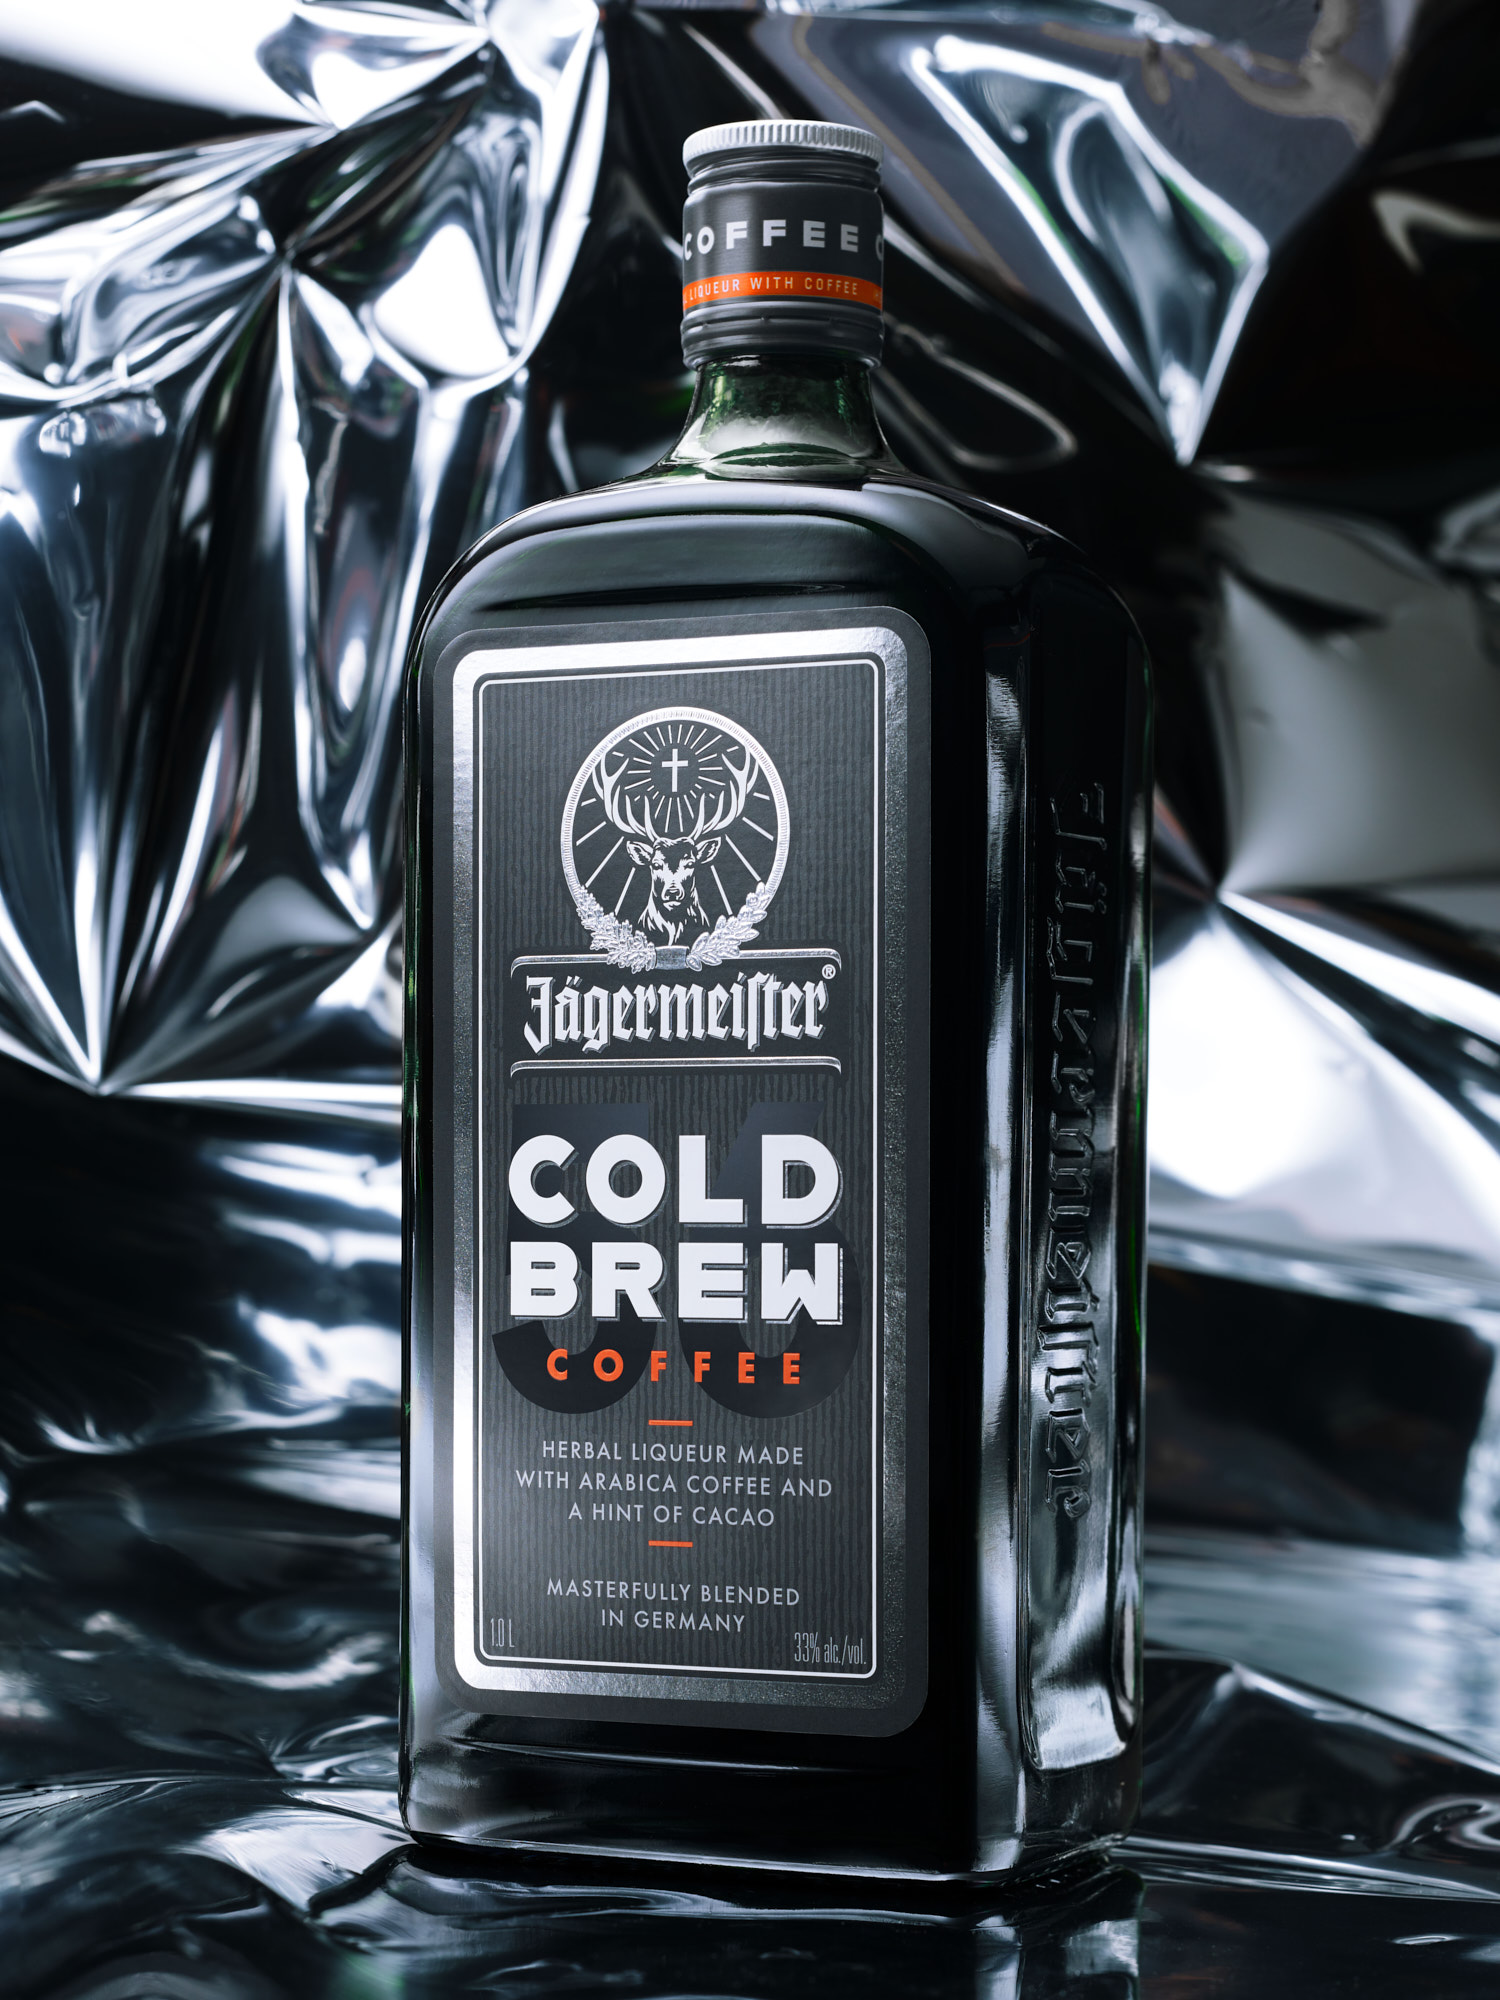 bernd-westphal-stillstars-cases-studio oeding-jägermeister-liquid-still-life-photography-003